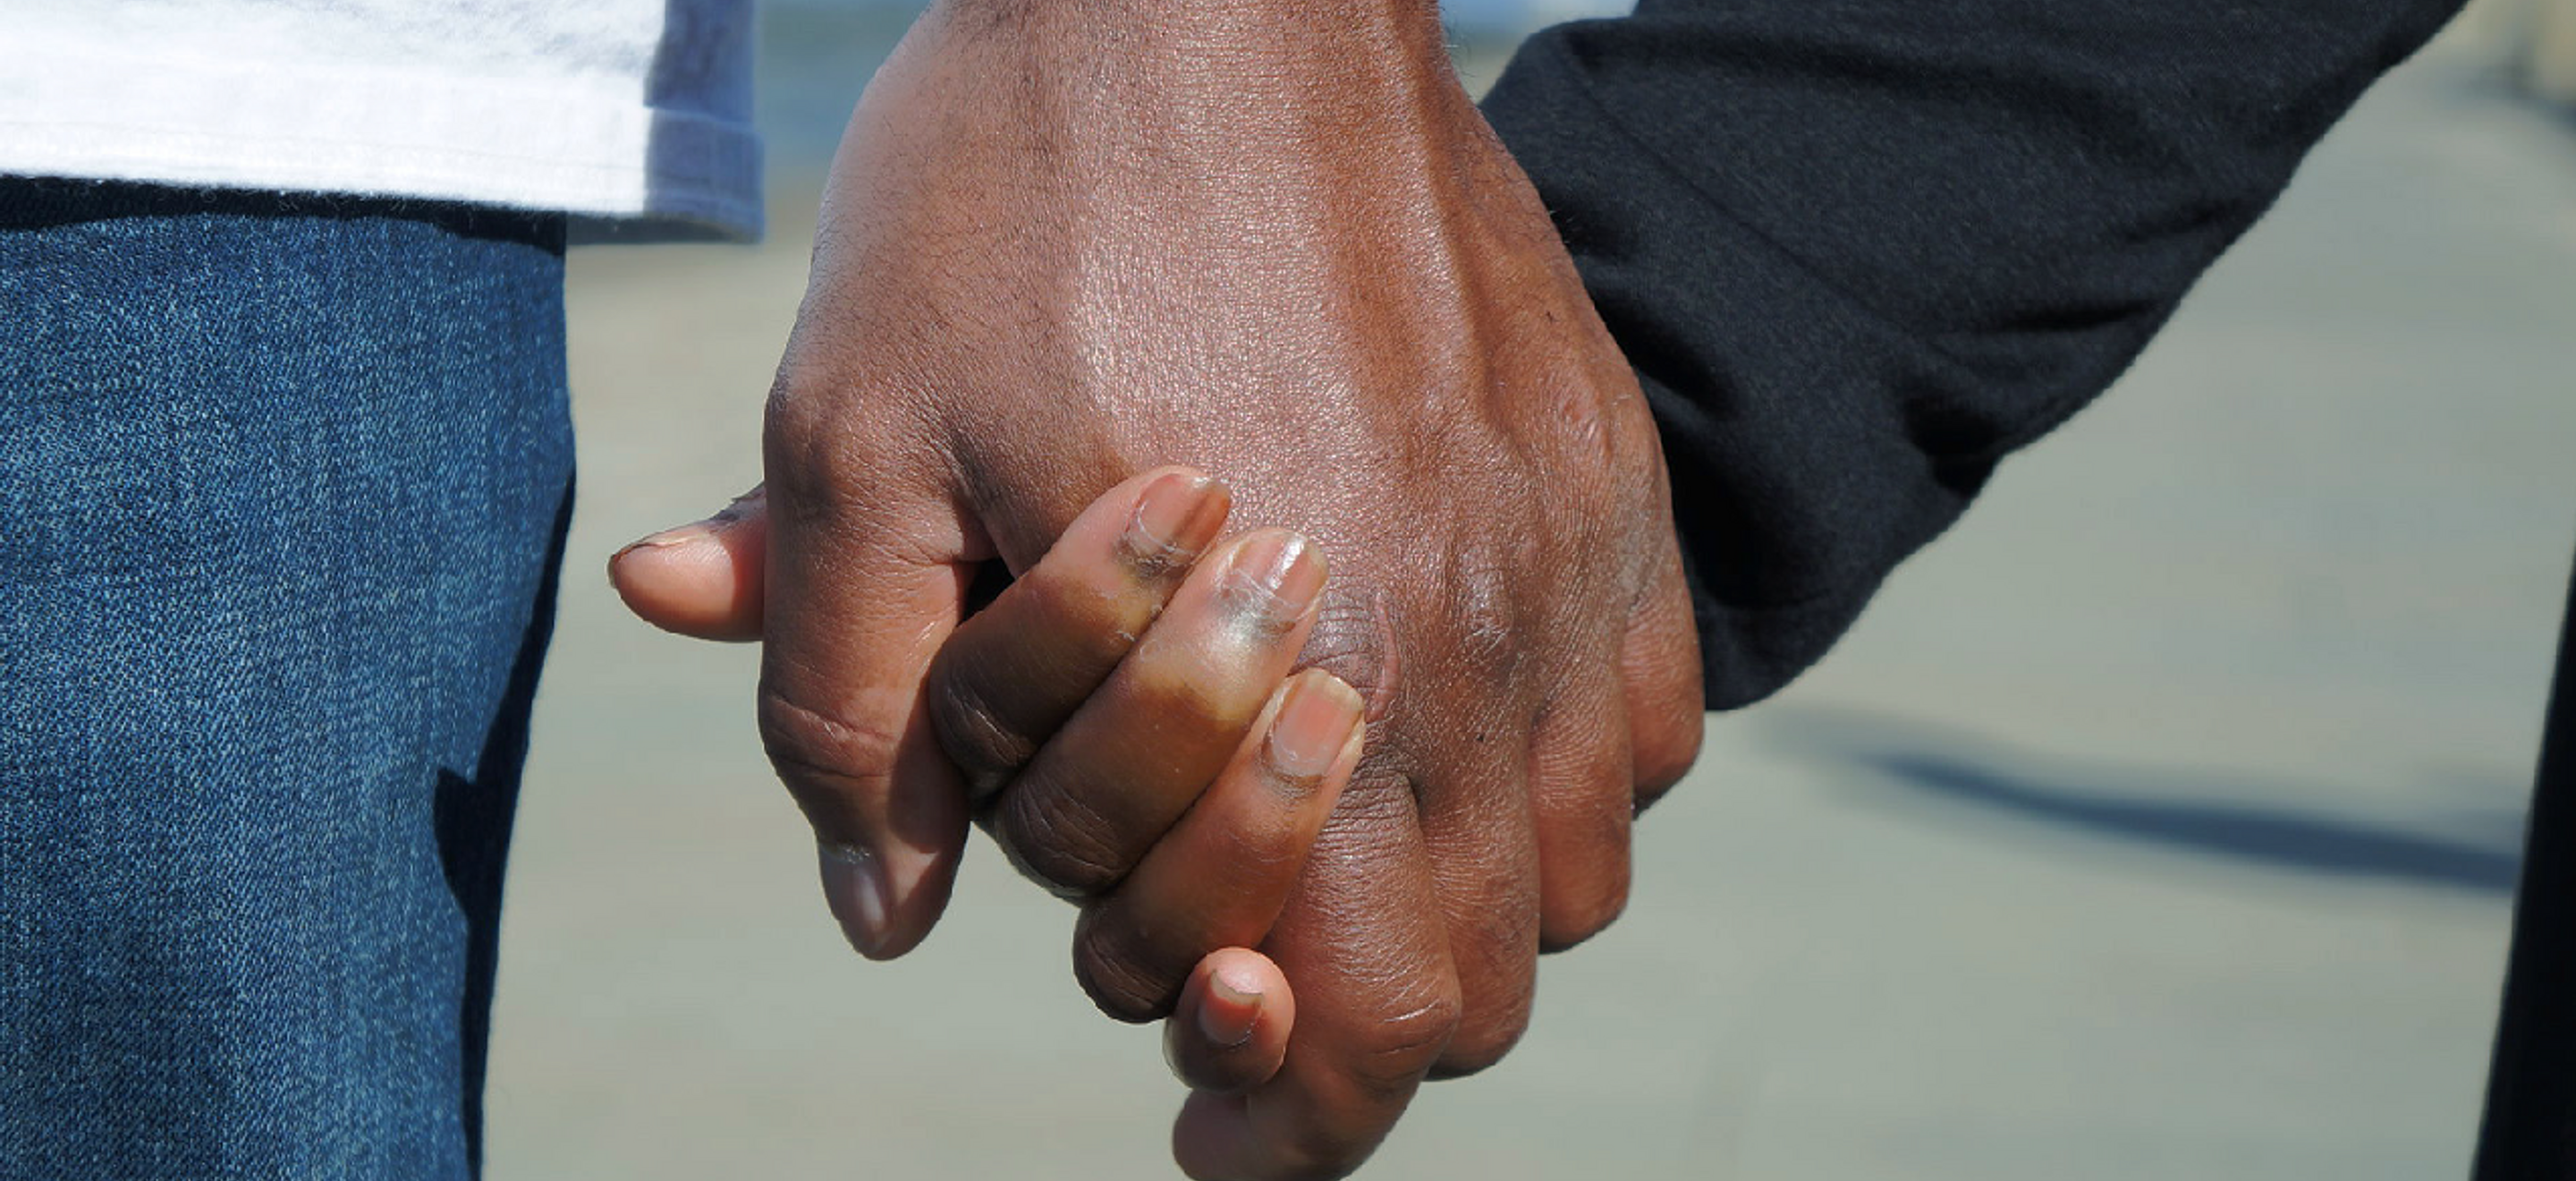 A close-up photo of a small Black hand clasped in a larger Black hand.